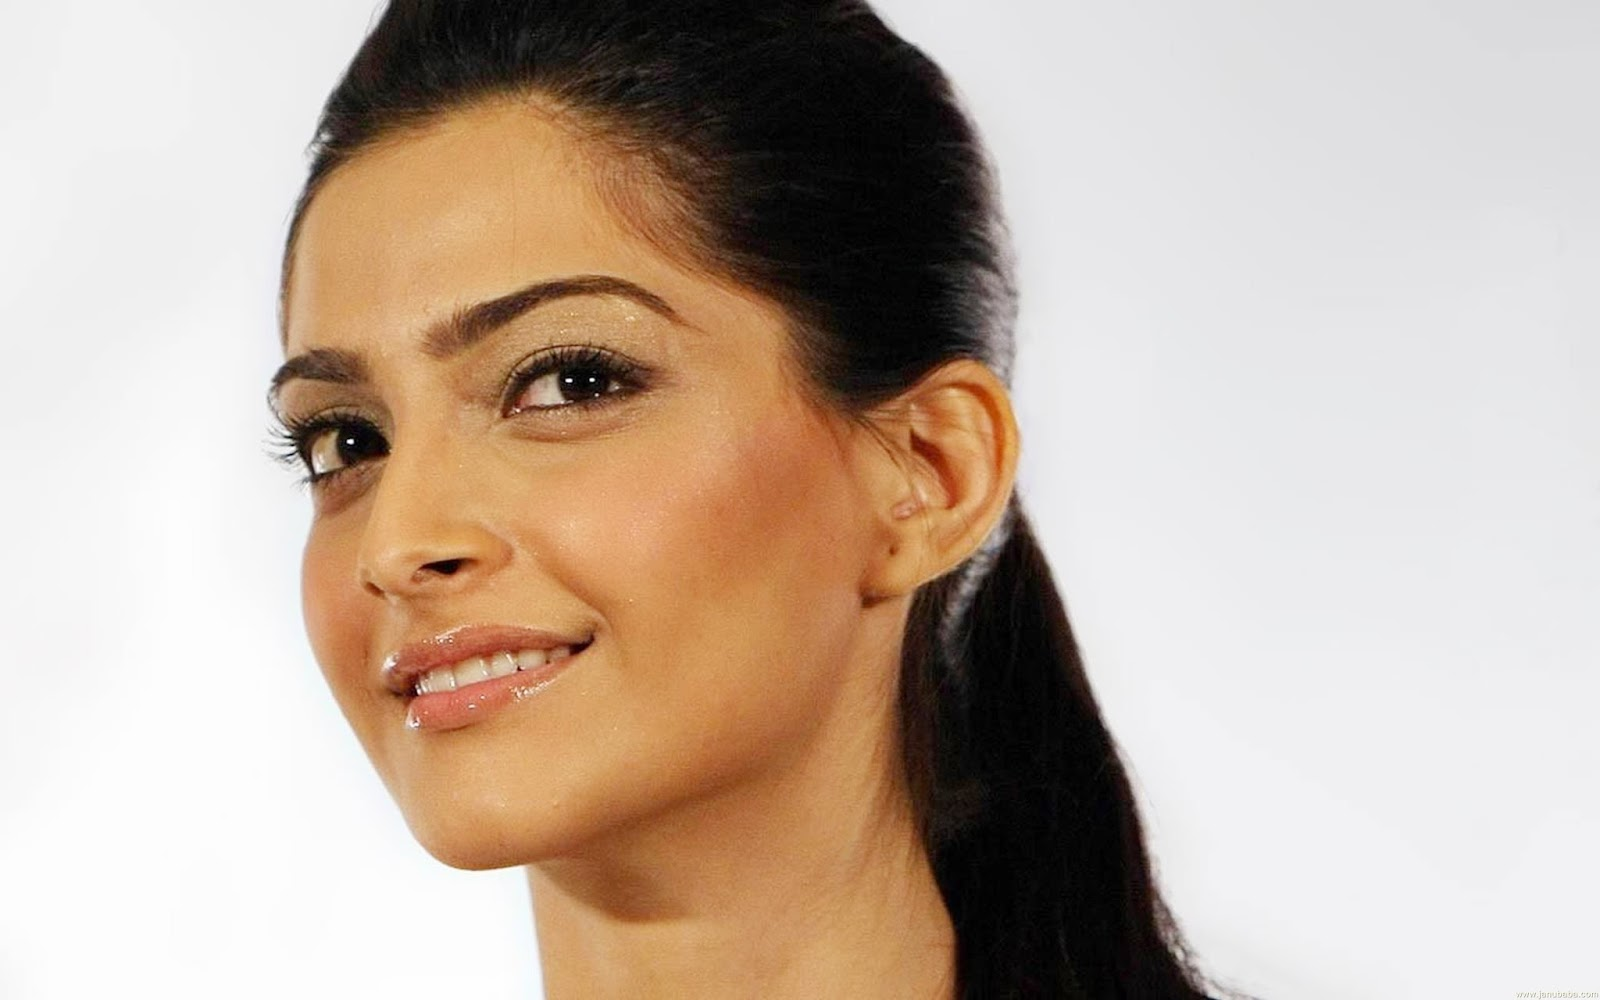 Cute sonam kapoor wallpapers in hd quality